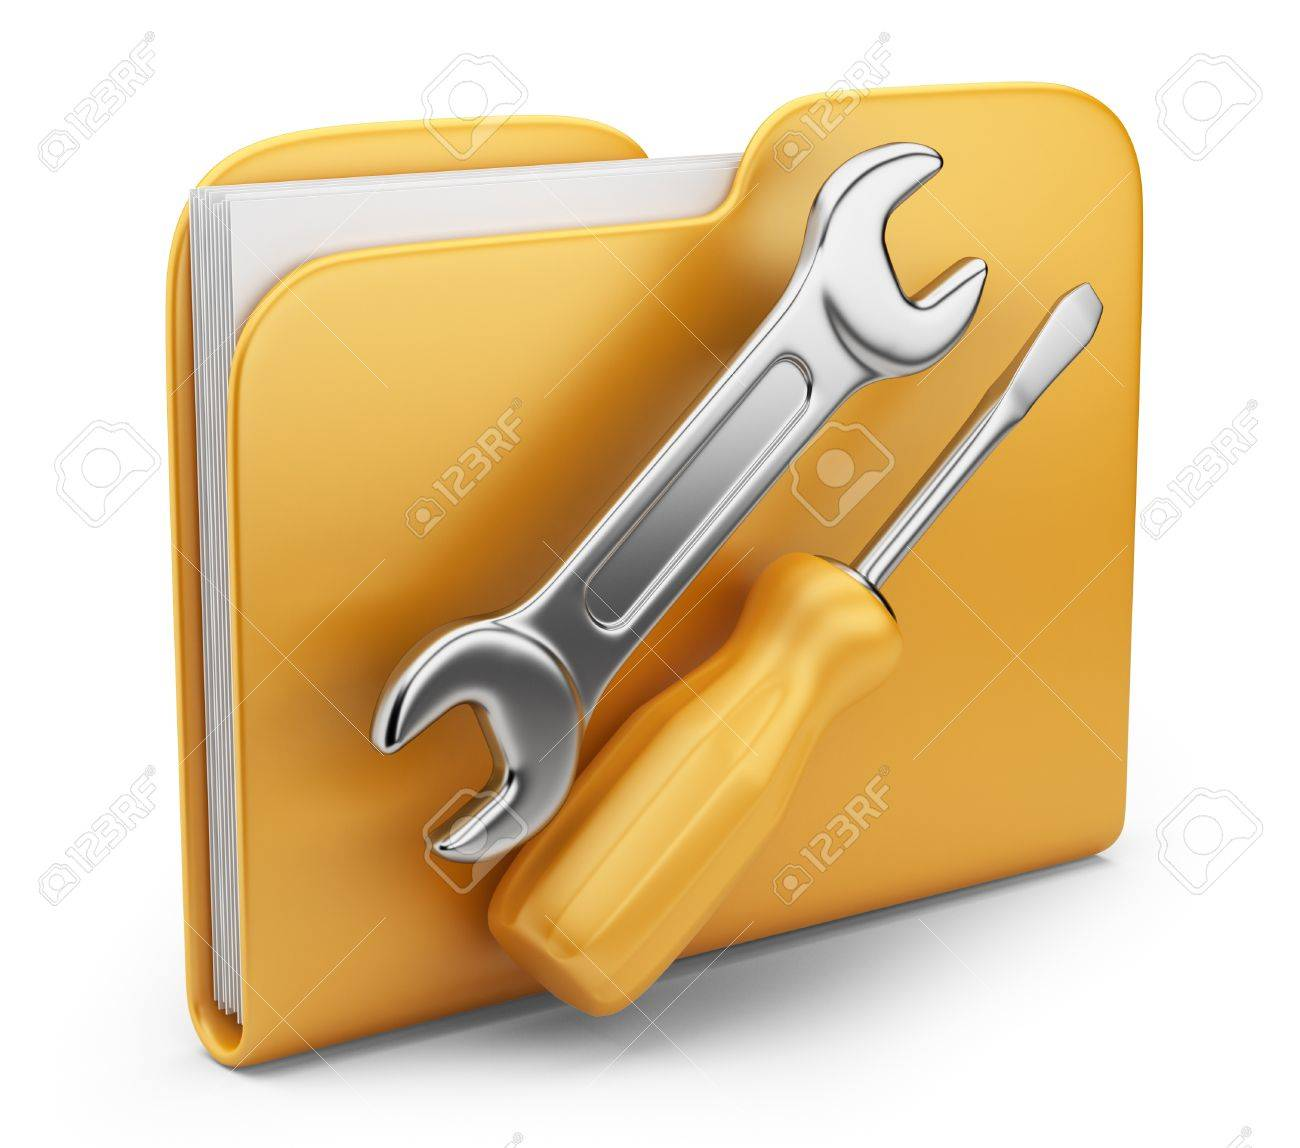 Folder with tool 3D computer icon isolated on white - 14846792